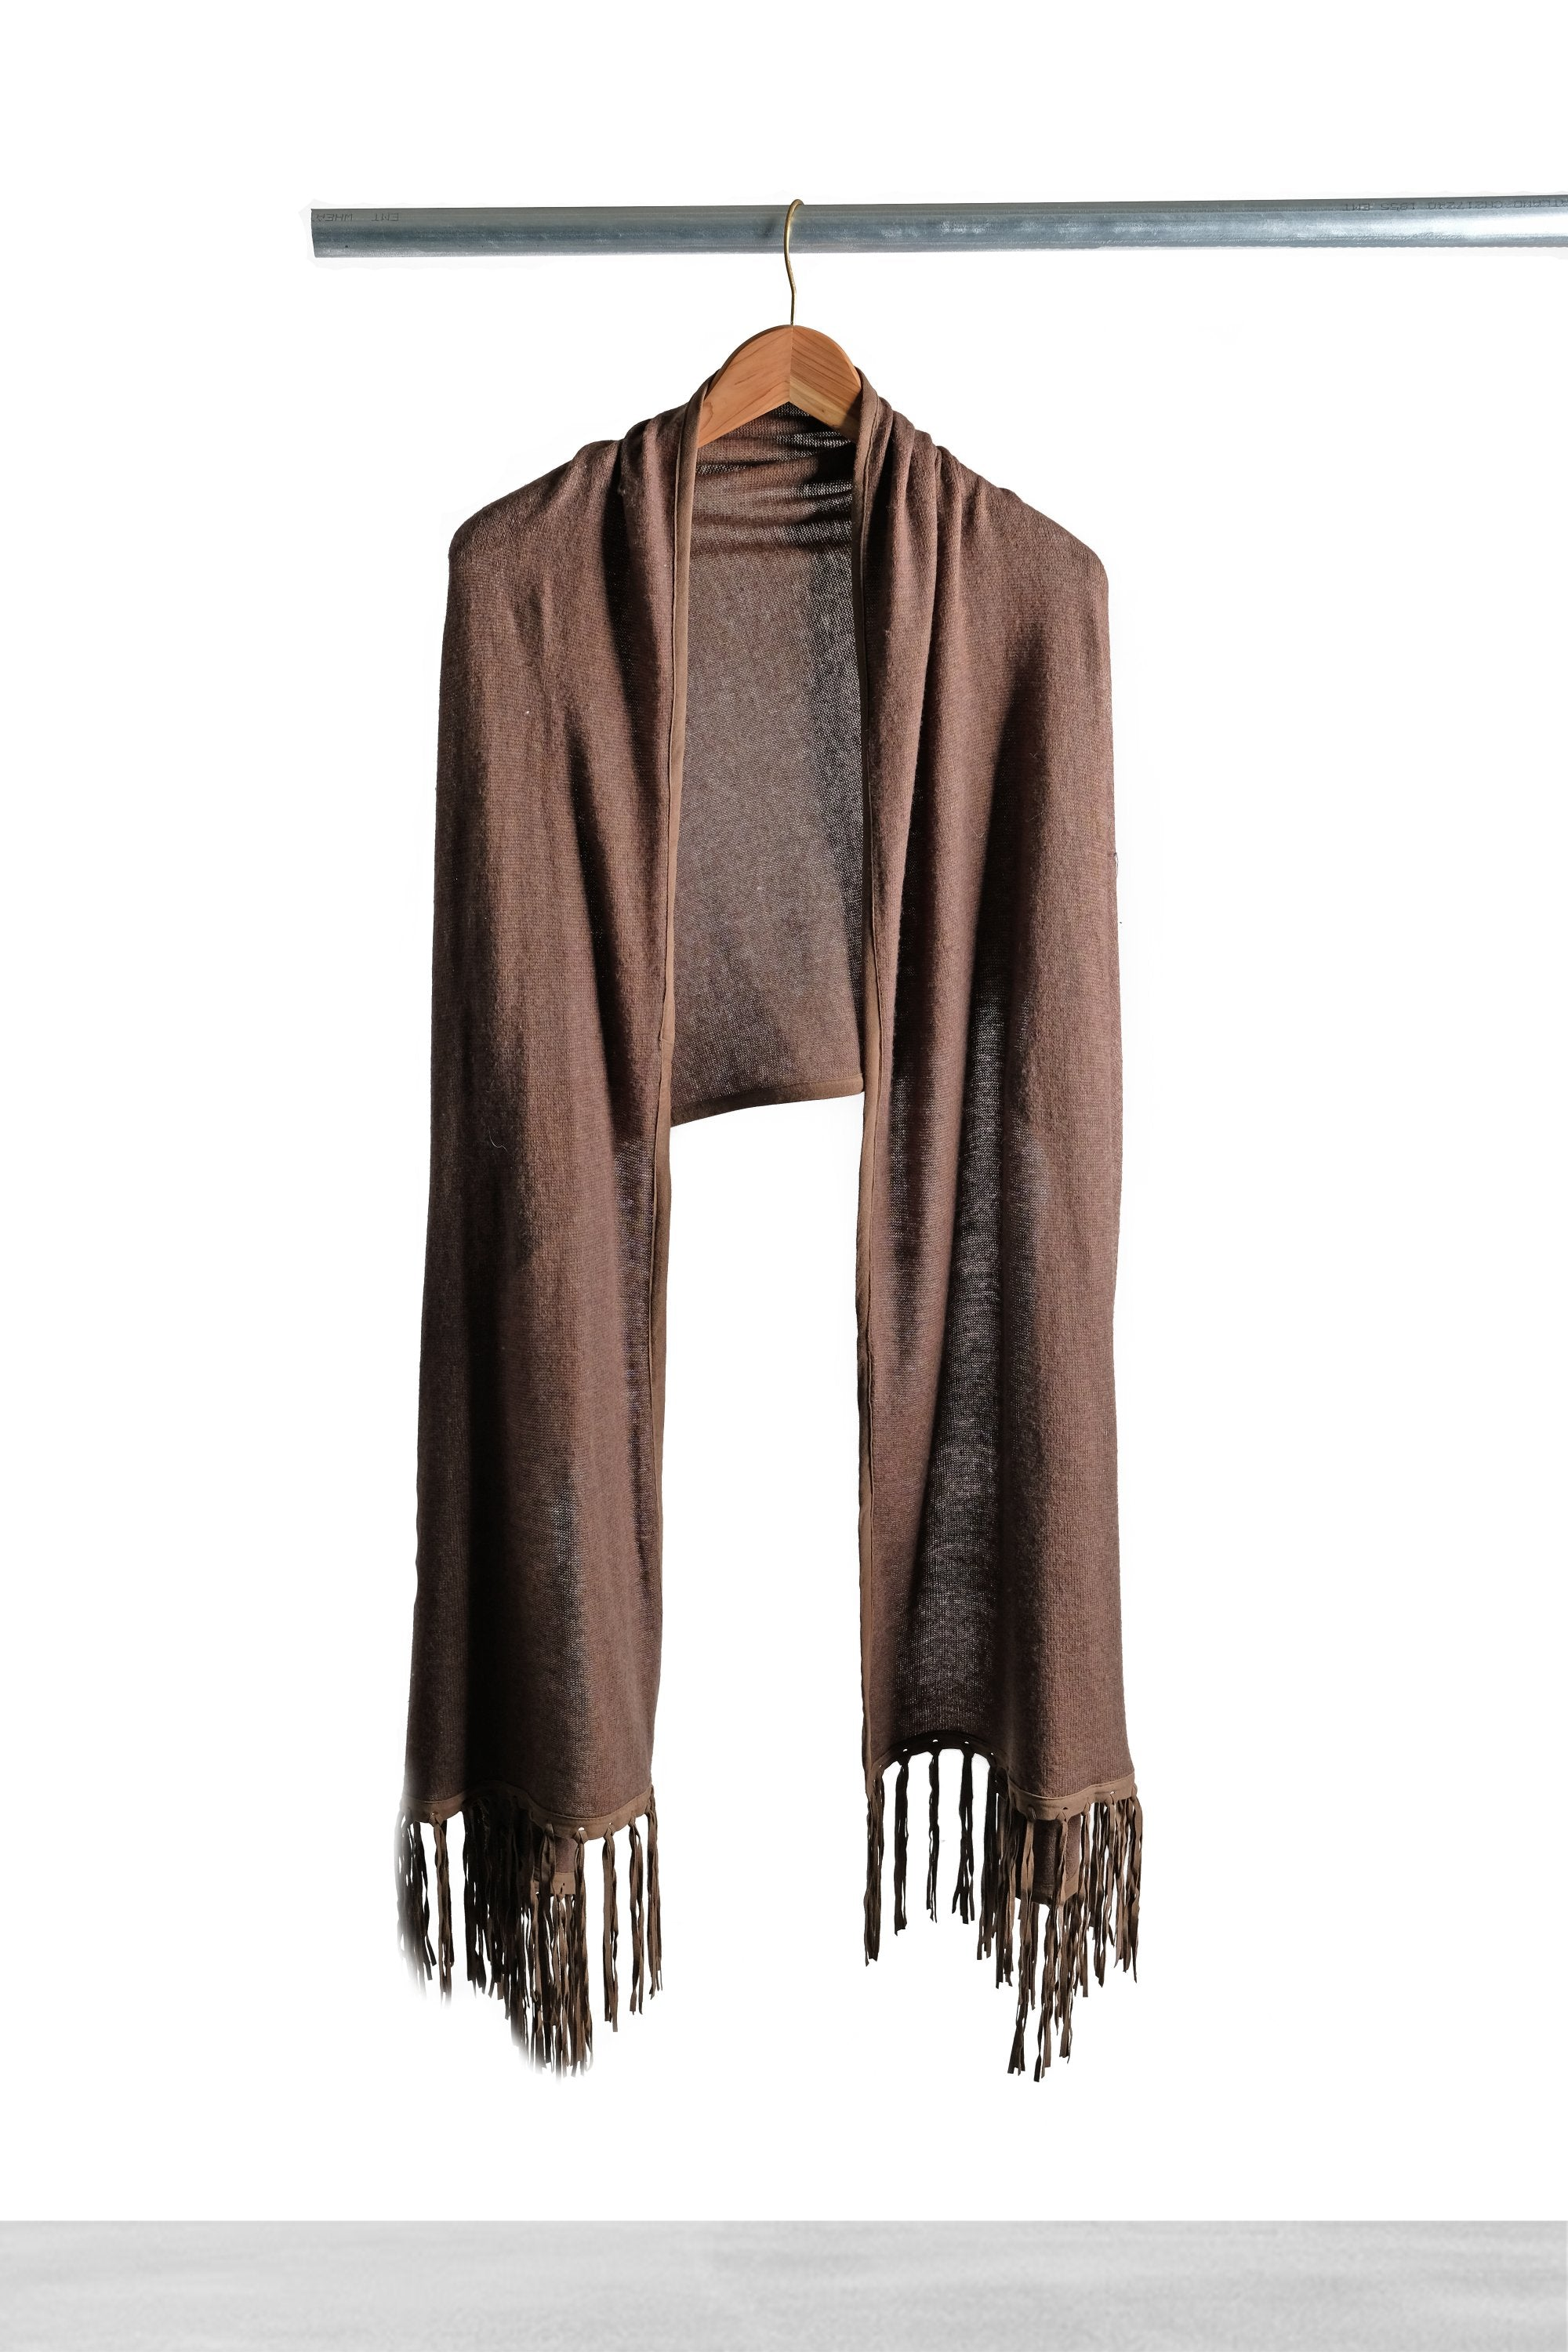 Cinnamon Shawl with Fringe - La Lo La Clothing